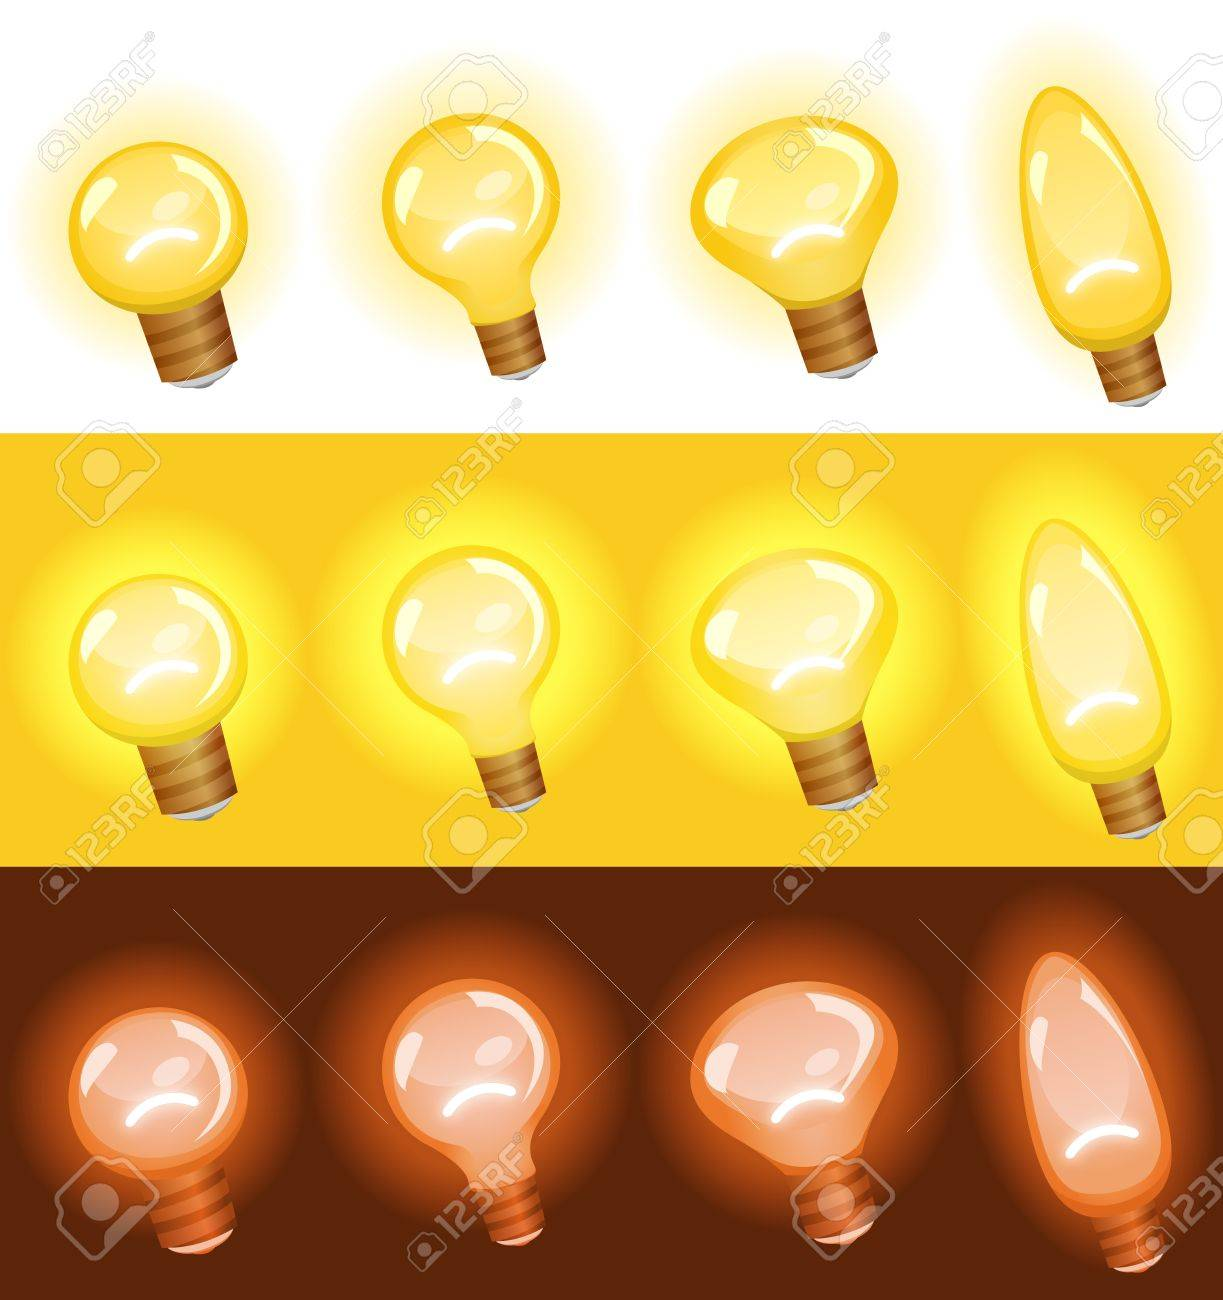 Illustration of a set of cartoon light bulb, isolated on white, in yellow for concept, ideas and success in arts or business, and red for danger, warning sign and security symbols Stock Vector - 19354342